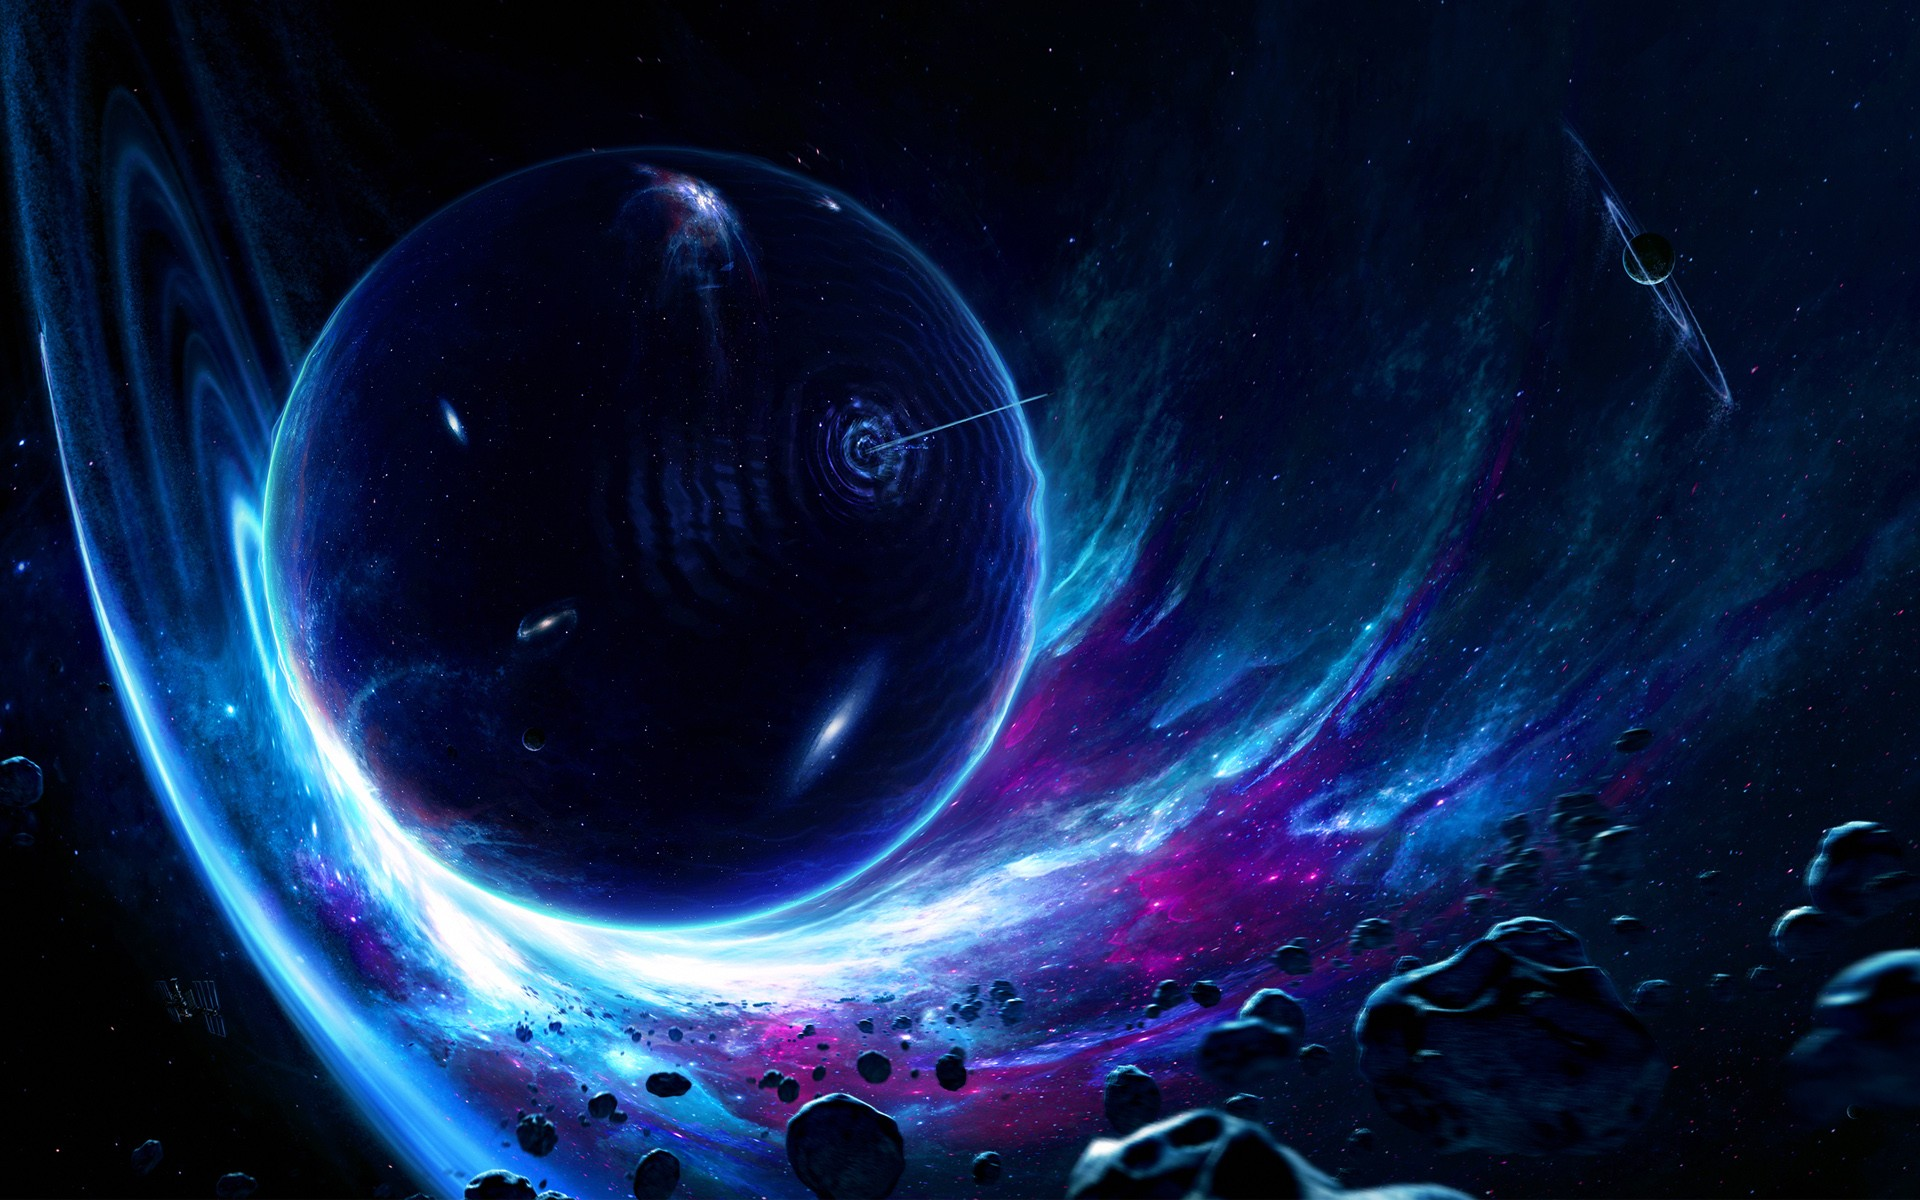 wormhole wallpaper space - photo #10